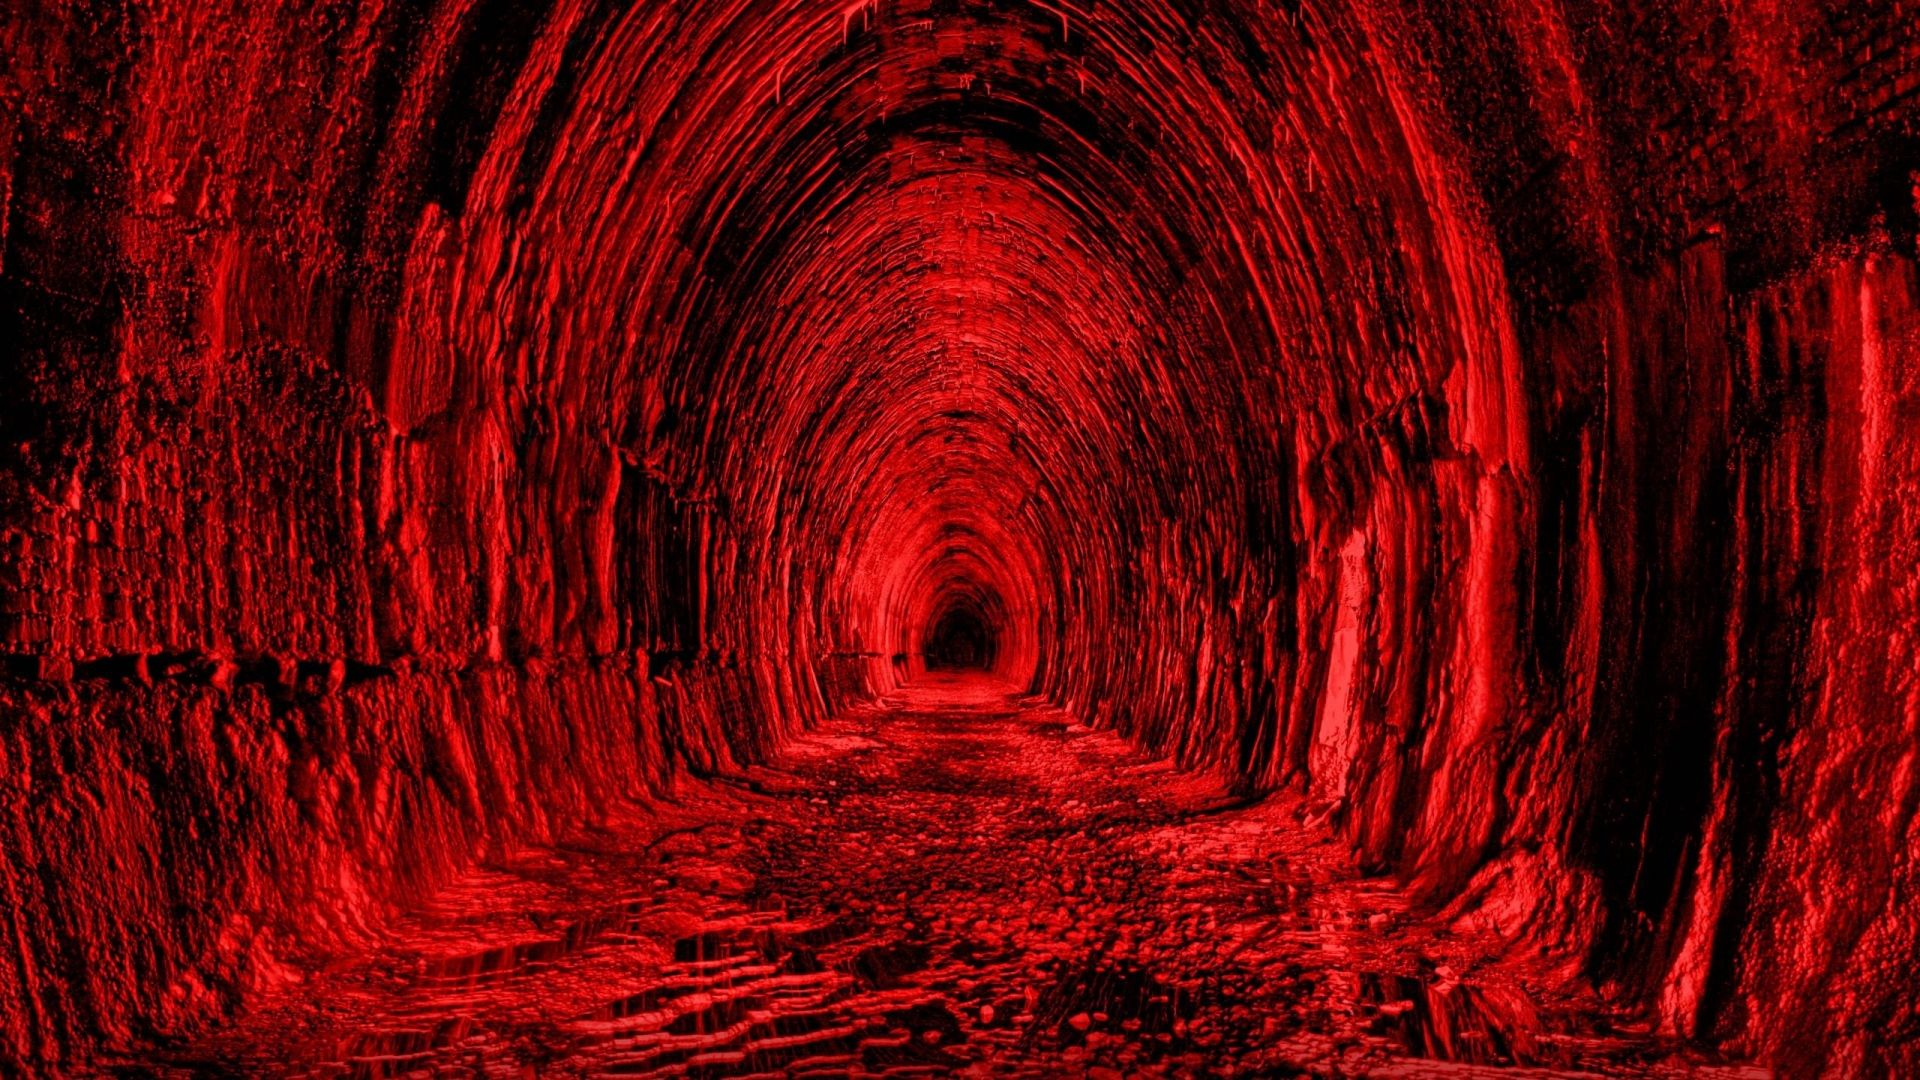 Dark Blood Wallpaper Download Wallpaper 1920x1080 Tunnel Red Black Light Full Hd